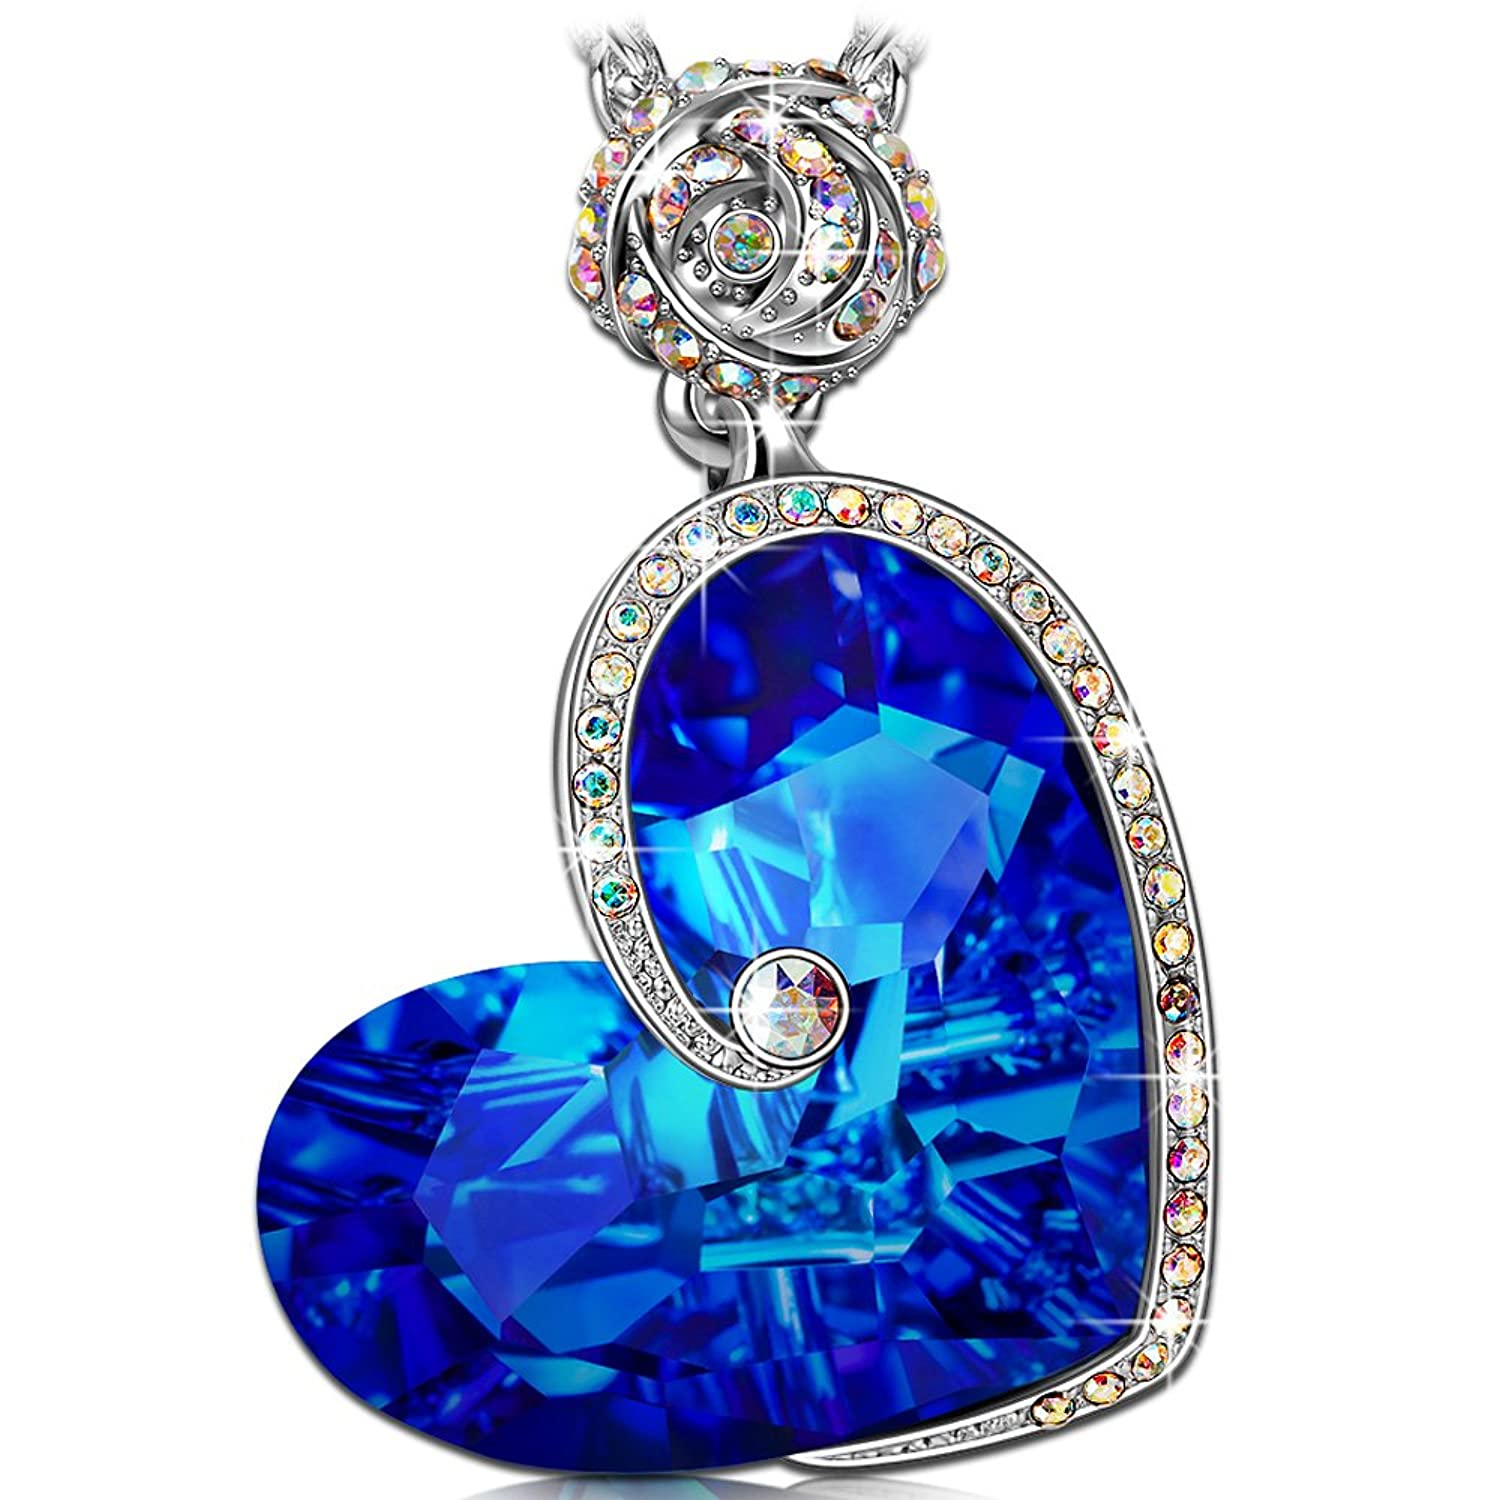 did list with of sapphire examples know learn gem auctions rock you real blue gemstones